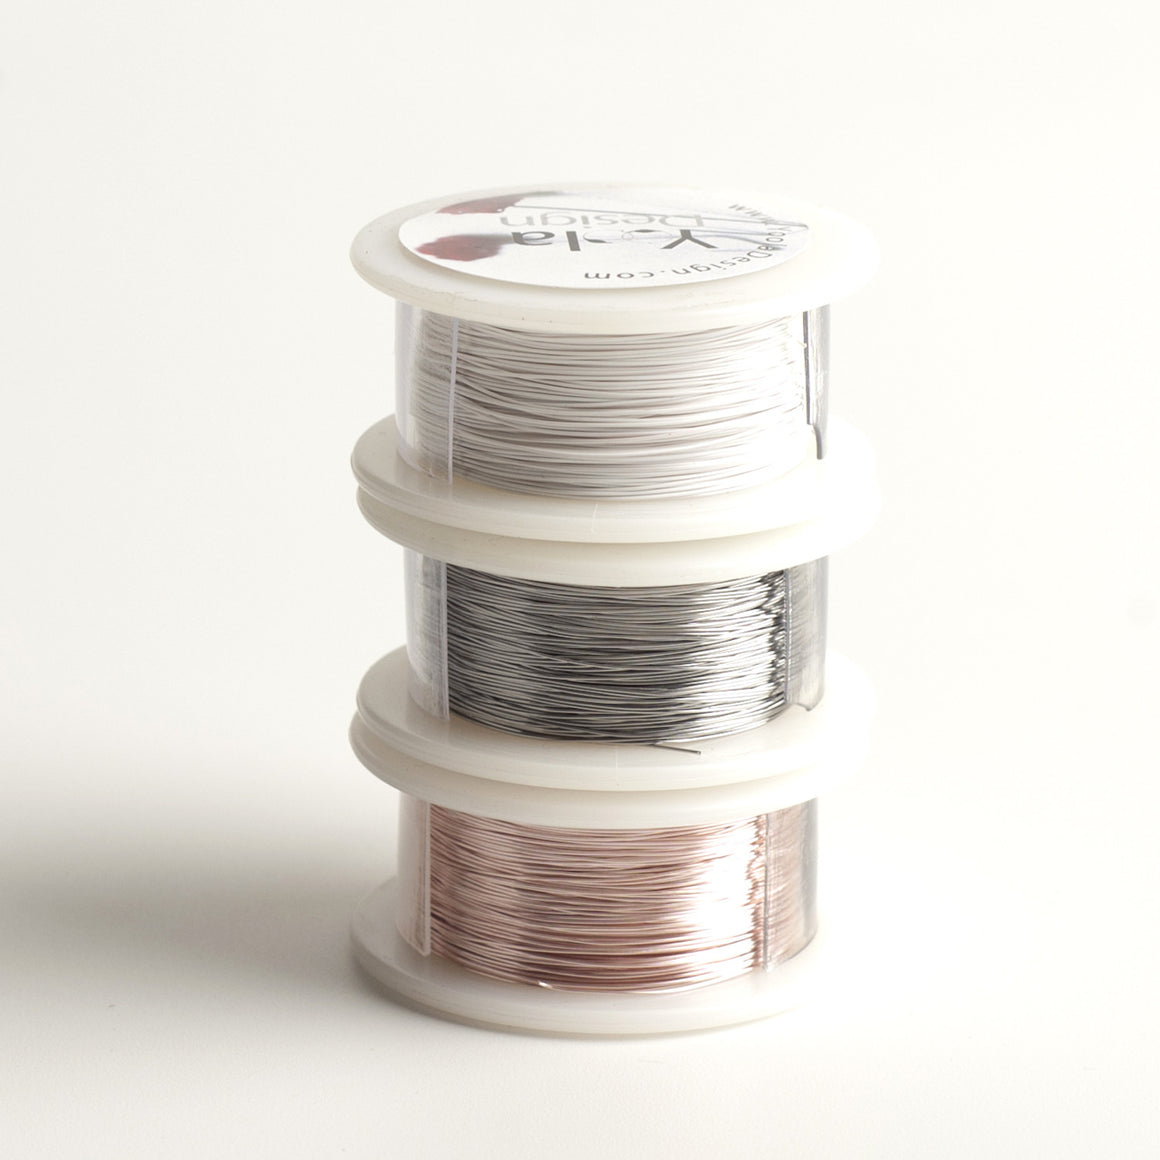 NEW Craft Wire - White, Steel, Rose Gold - 3 Extra long wire spools - 360 feet total - Yooladesign